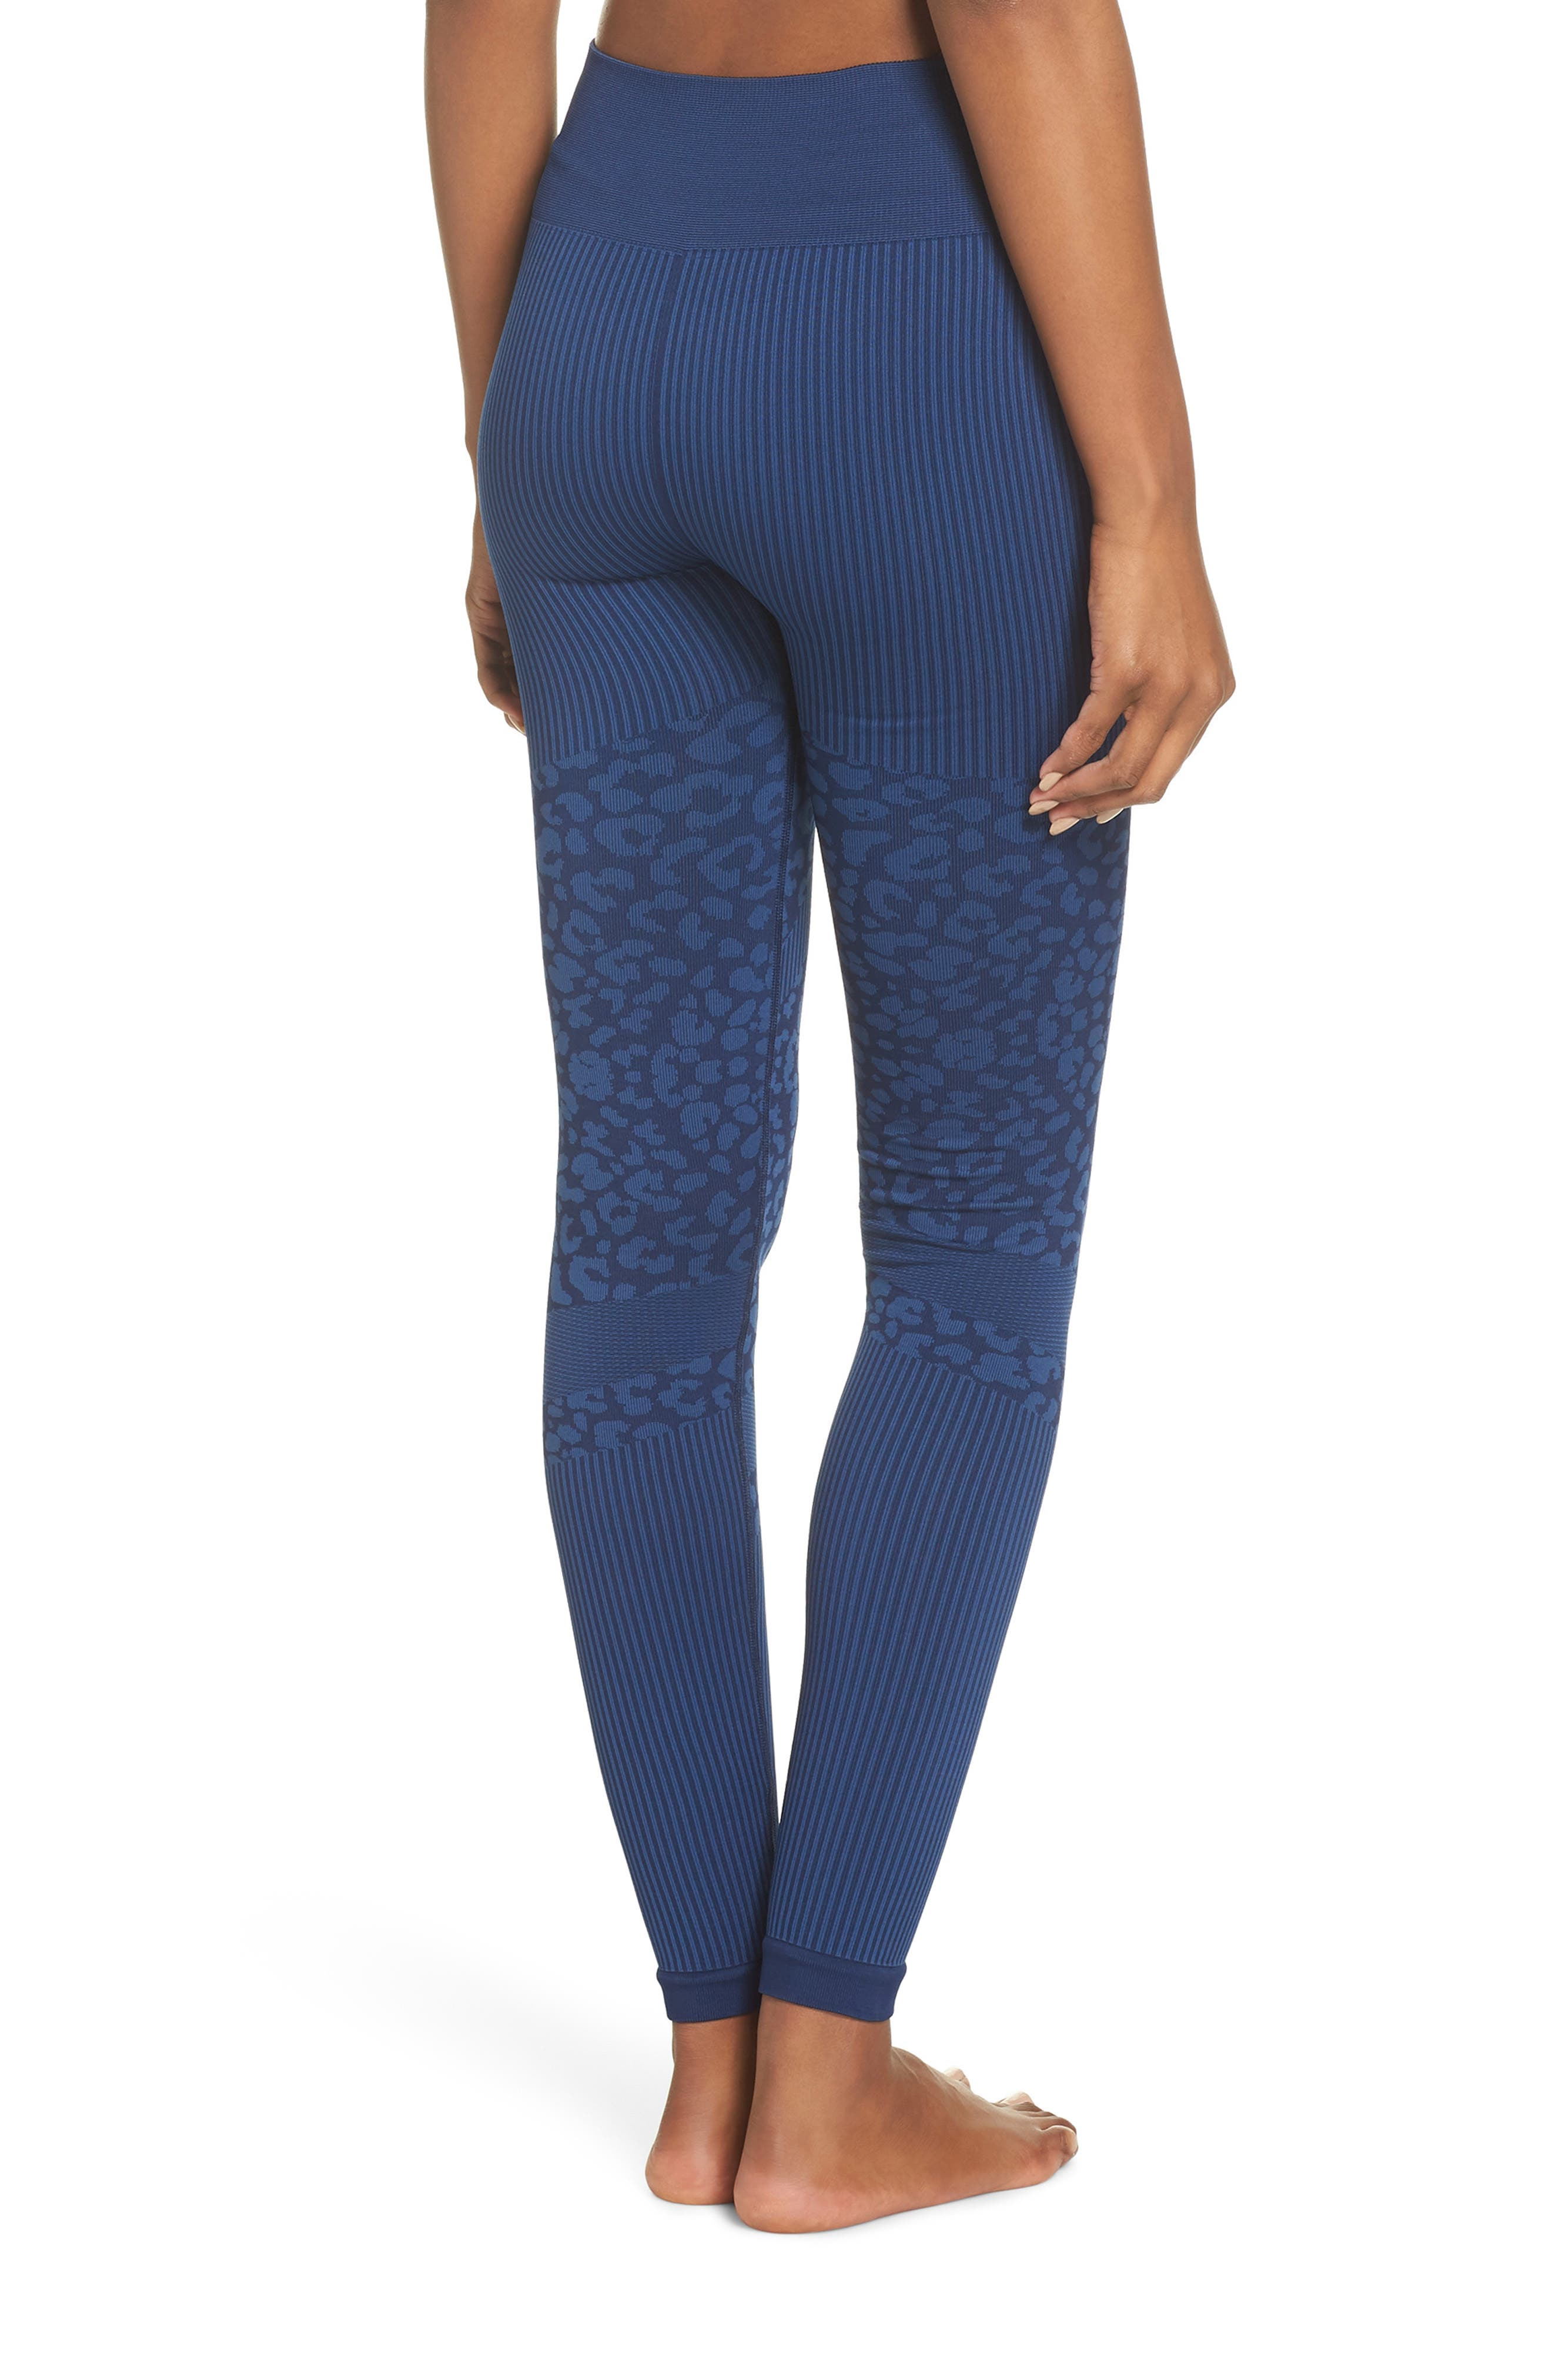 Quincy Seamless Leggings,                             Alternate thumbnail 2, color,                             NAVY LEOPARD